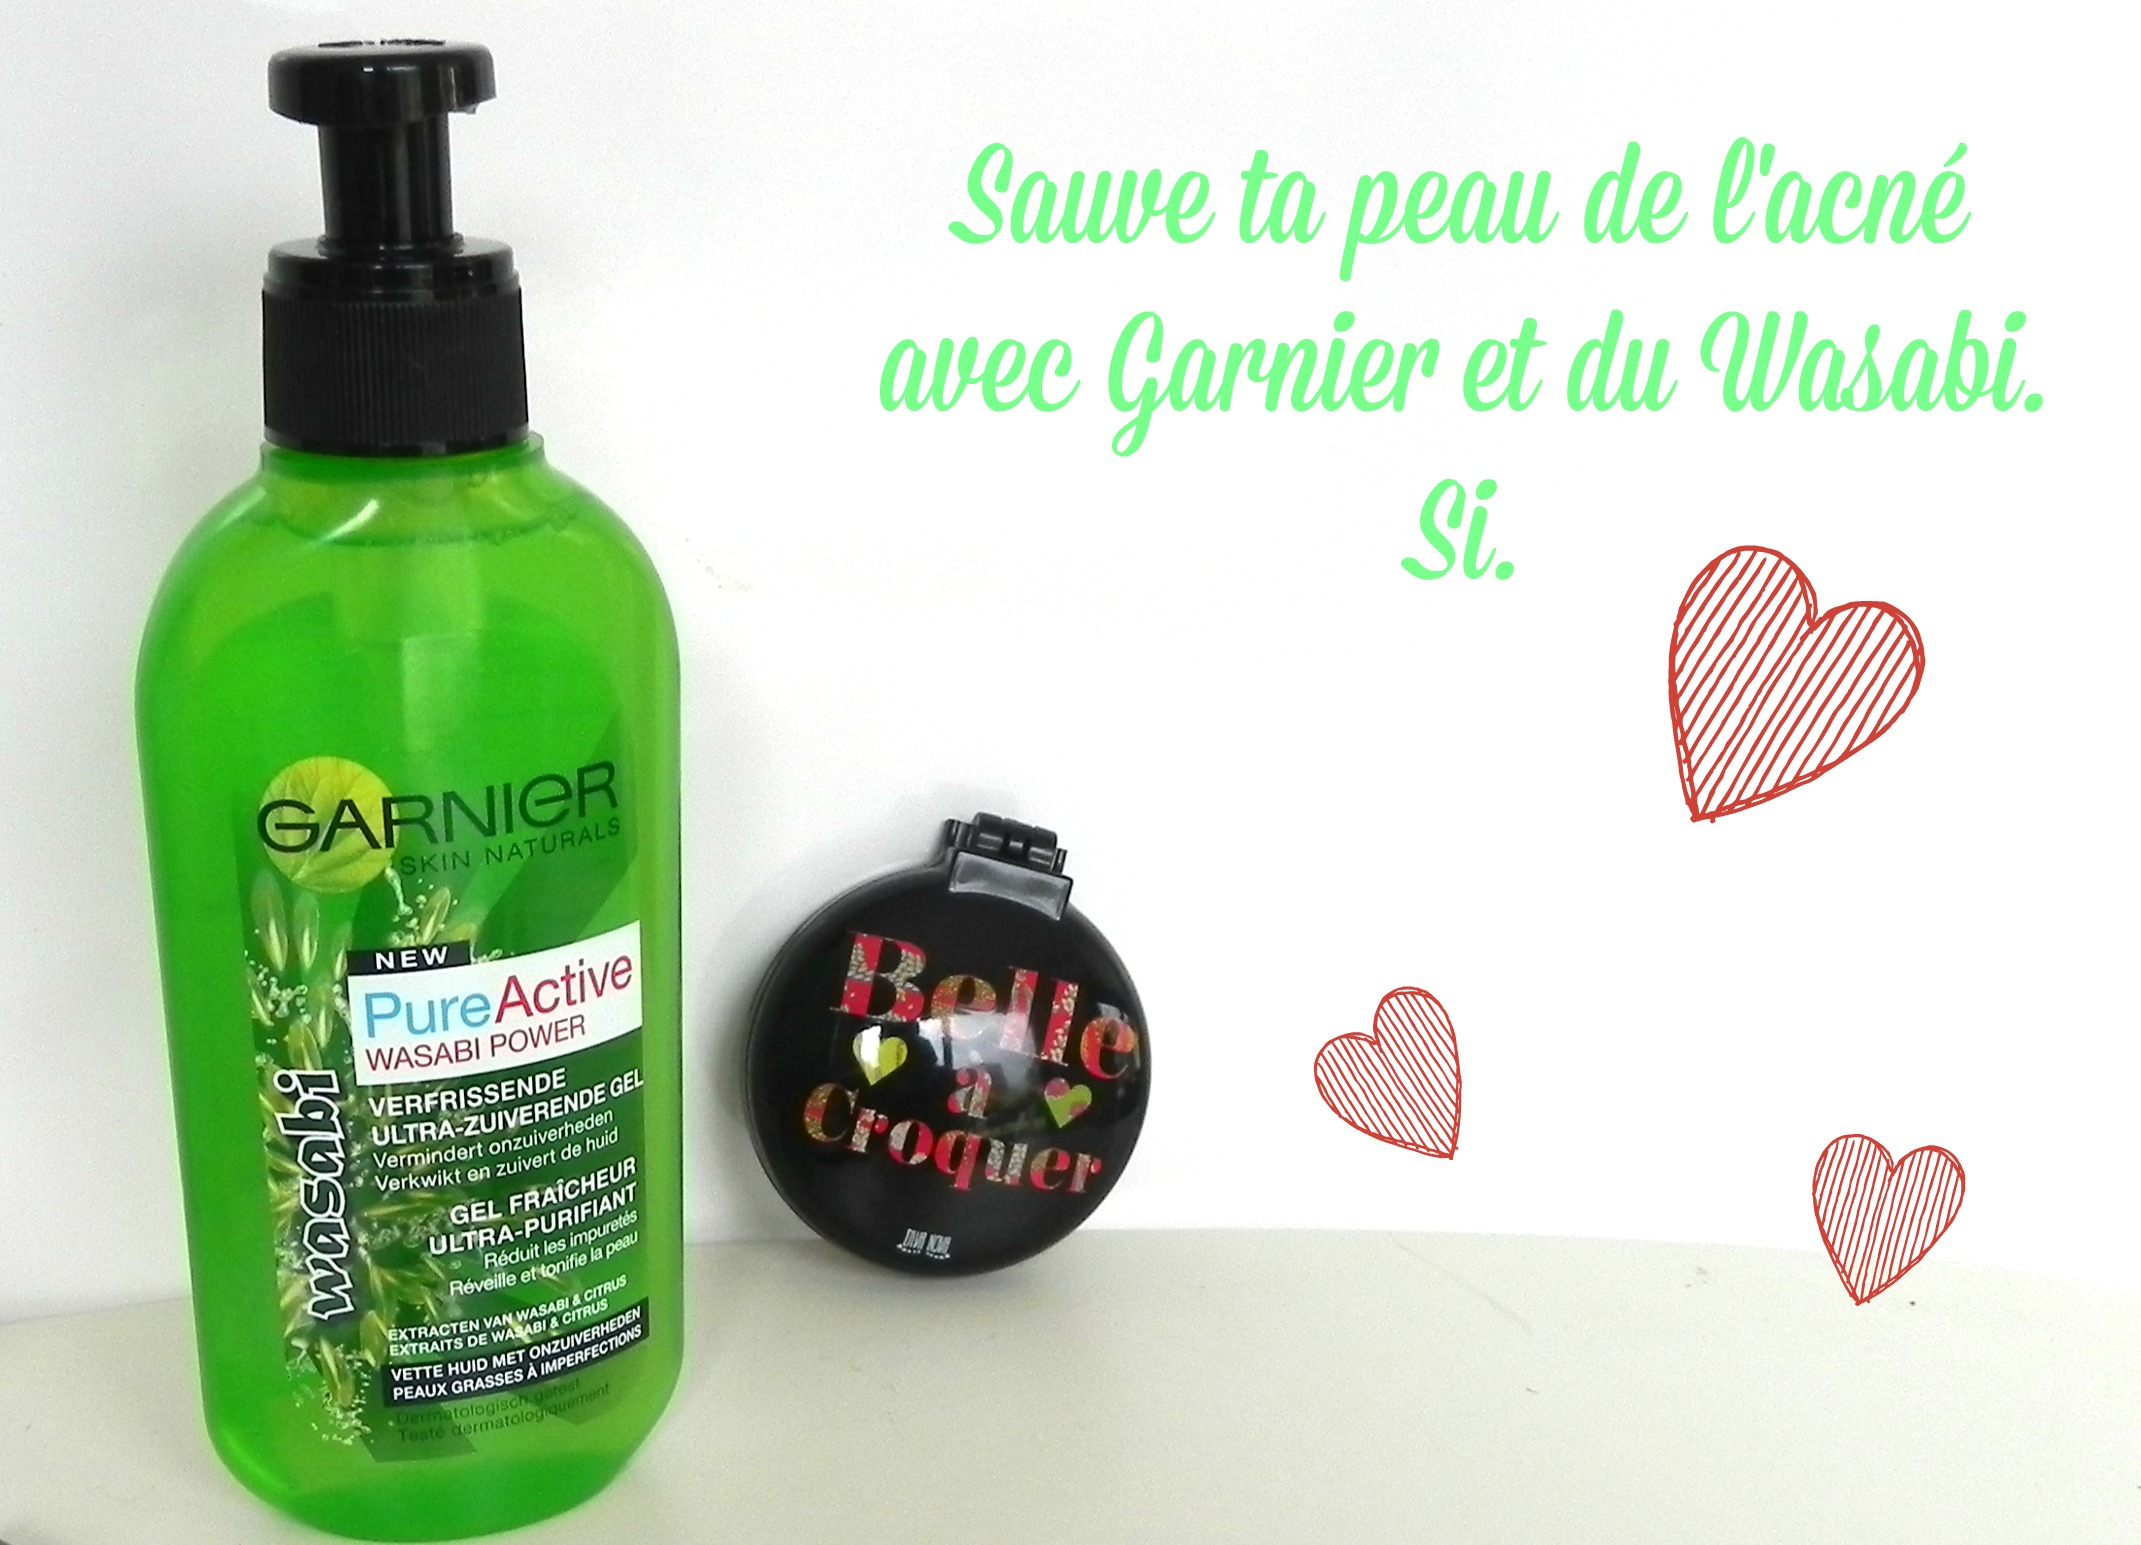 Garnier Pure Active Wasabi Power